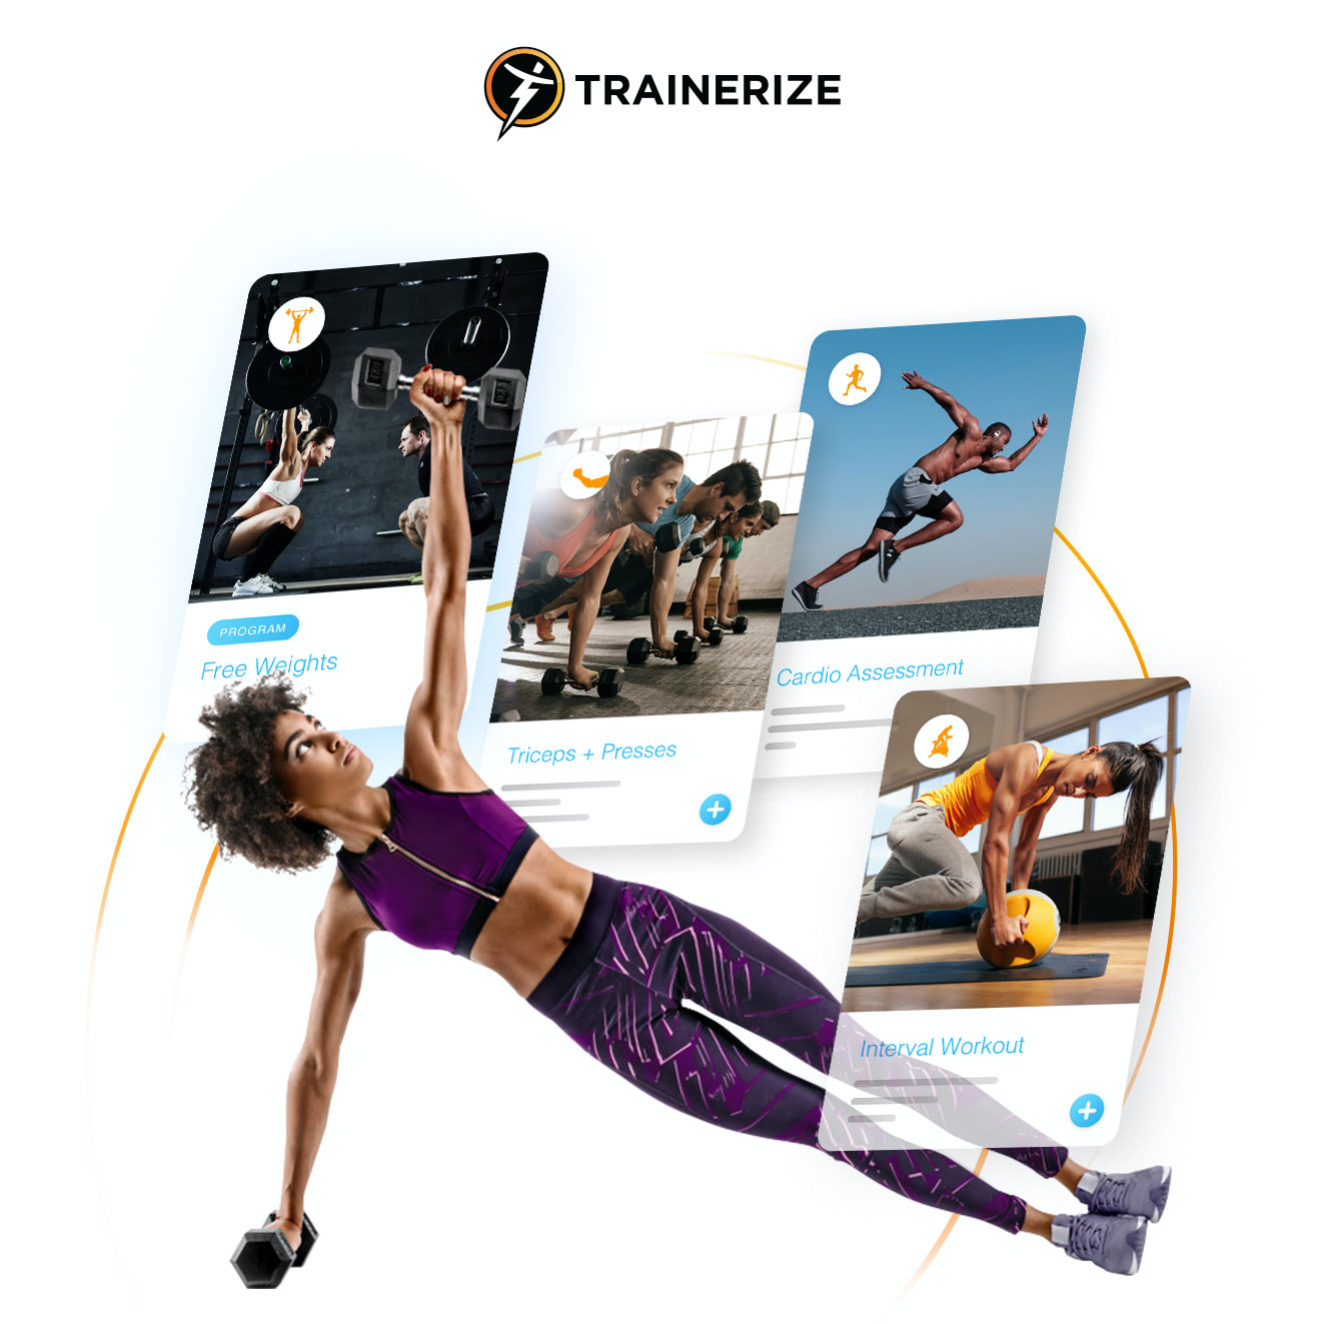 Trainerize Image 2